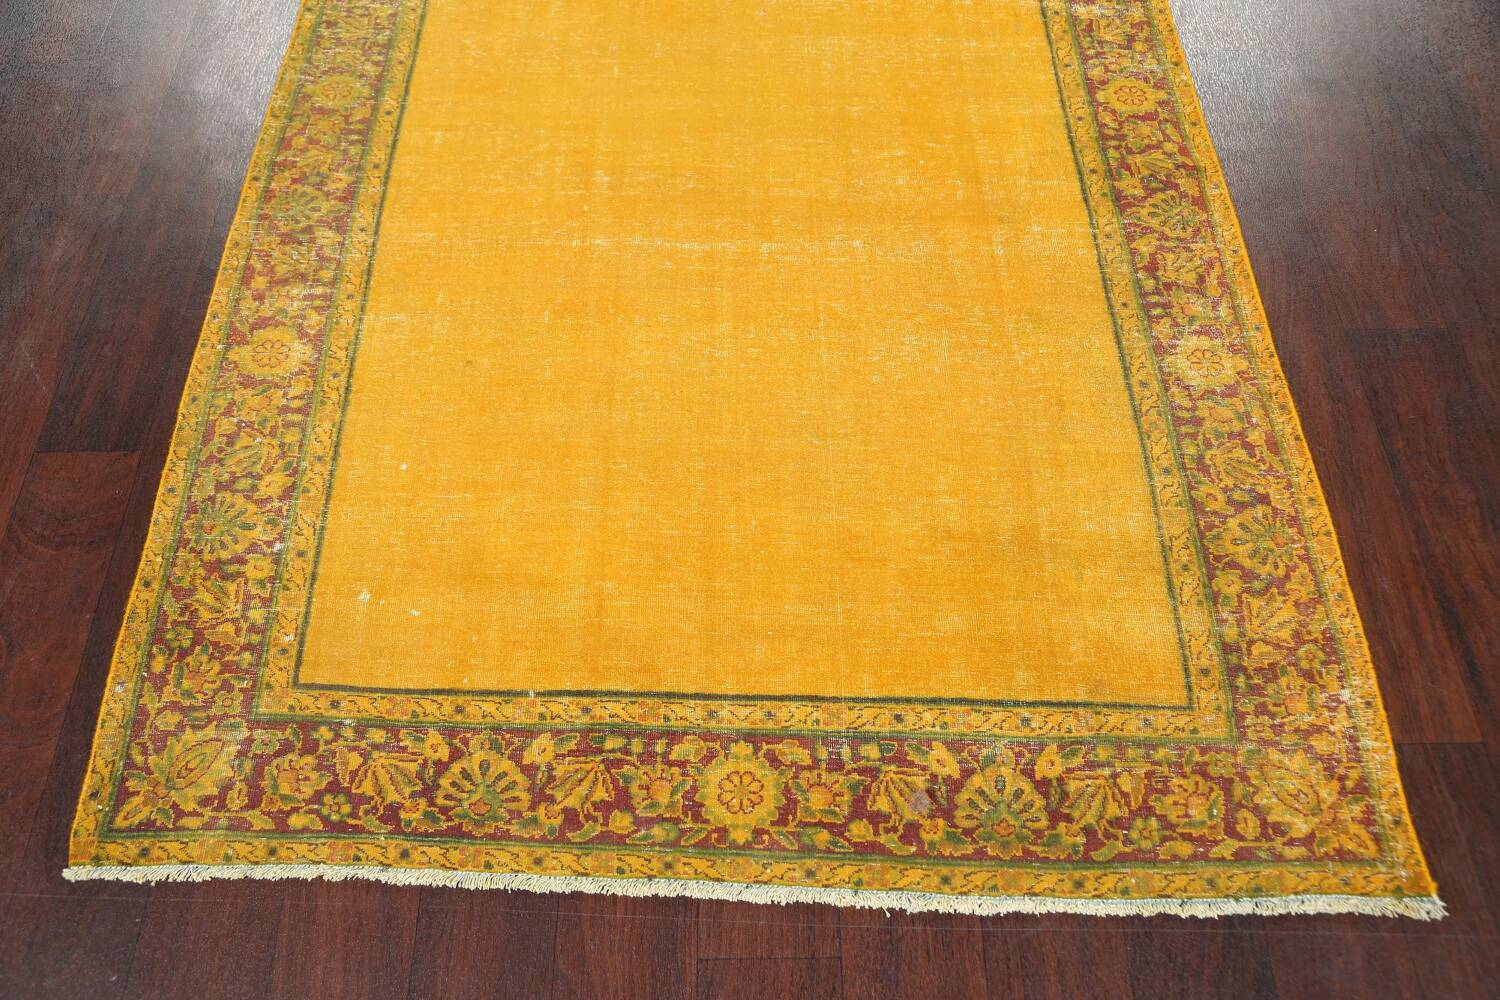 Antique Over-dyed Kerman Persian Runner Rug 4x21 image 8